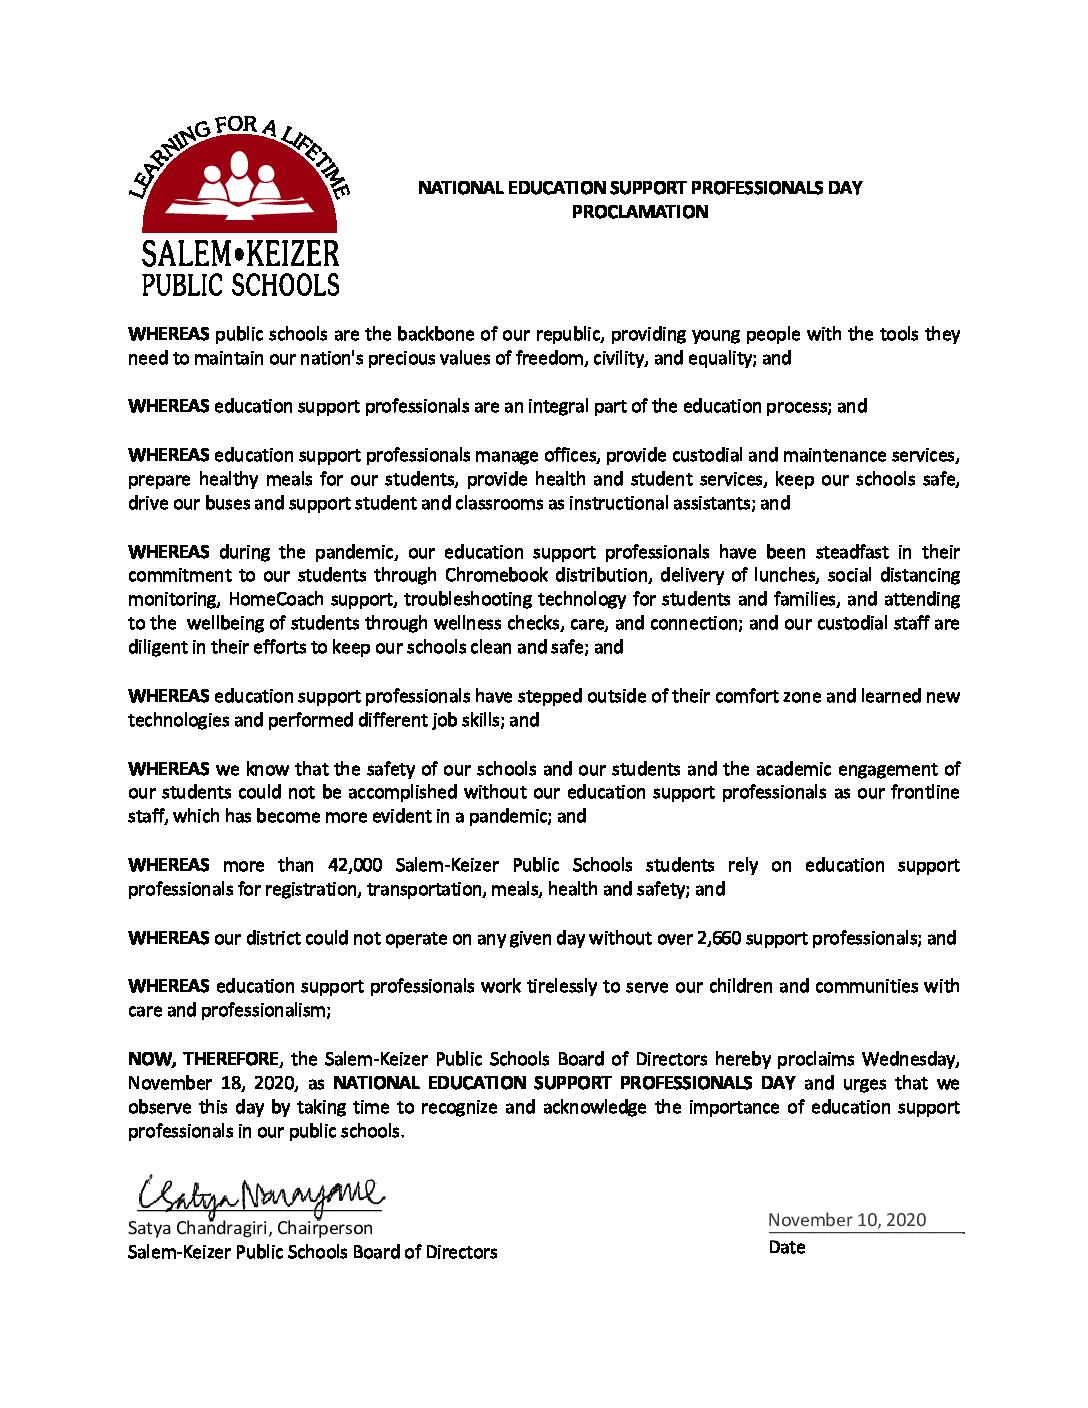 PDF of ESP Day Proclamation